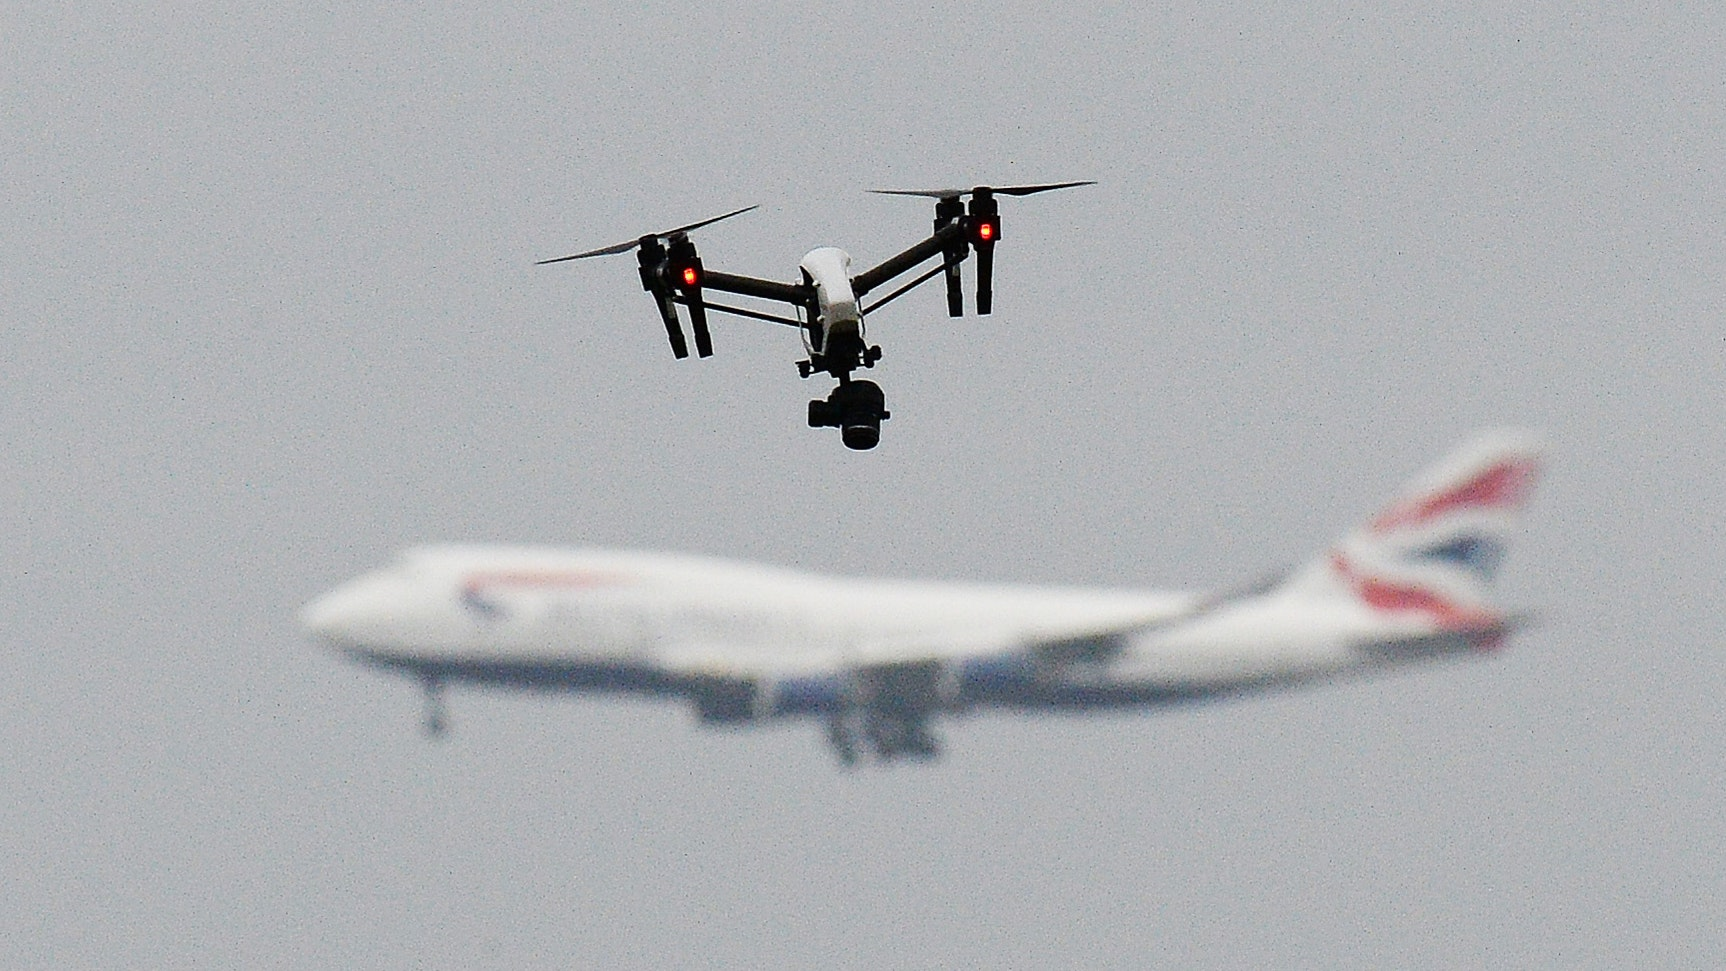 London's Heathrow Airport halts departures for drone report